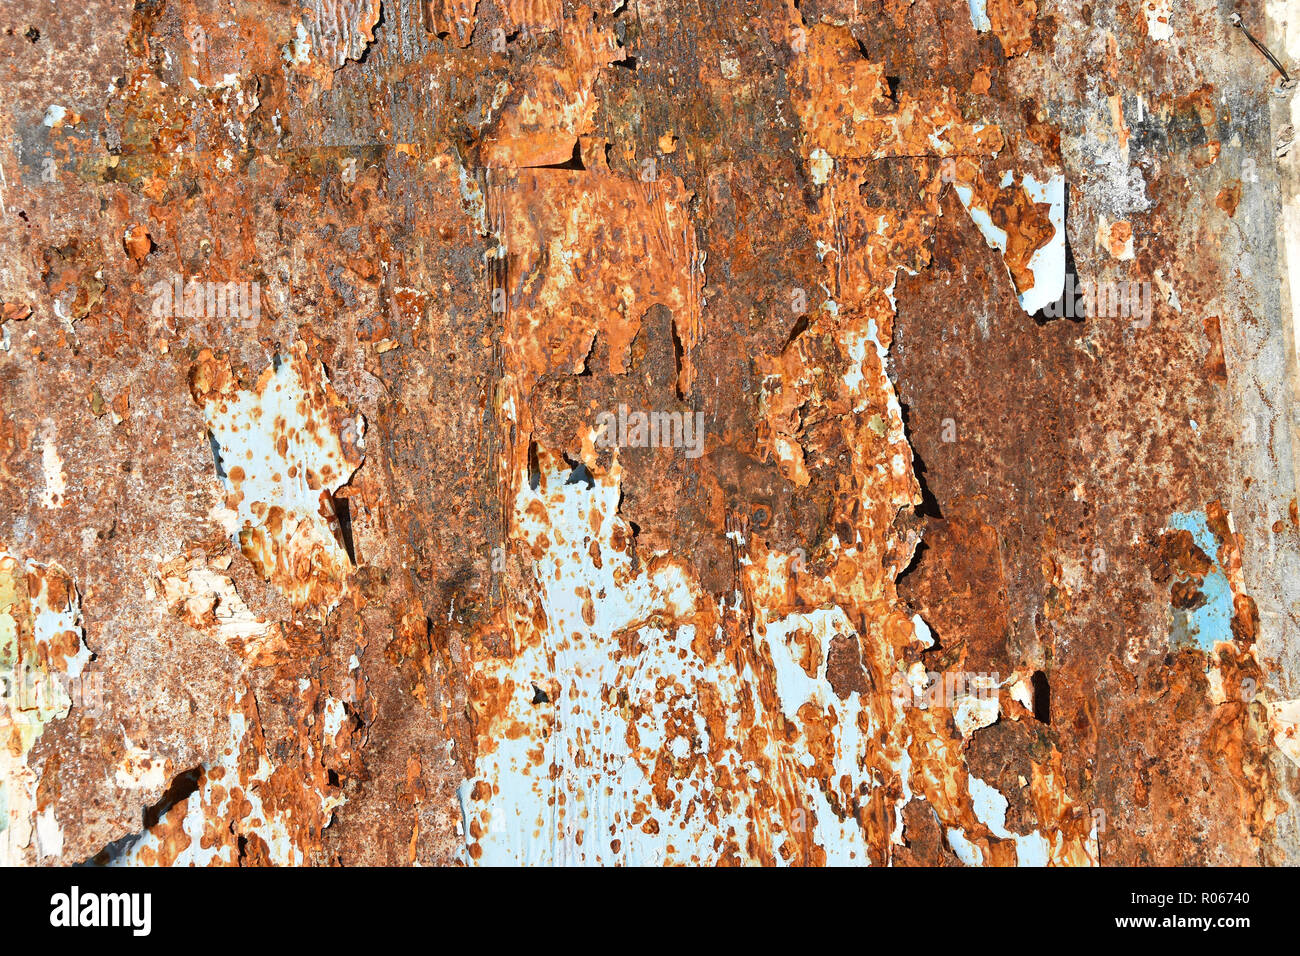 corroded sheet metal background with remains of posters Stock Photo